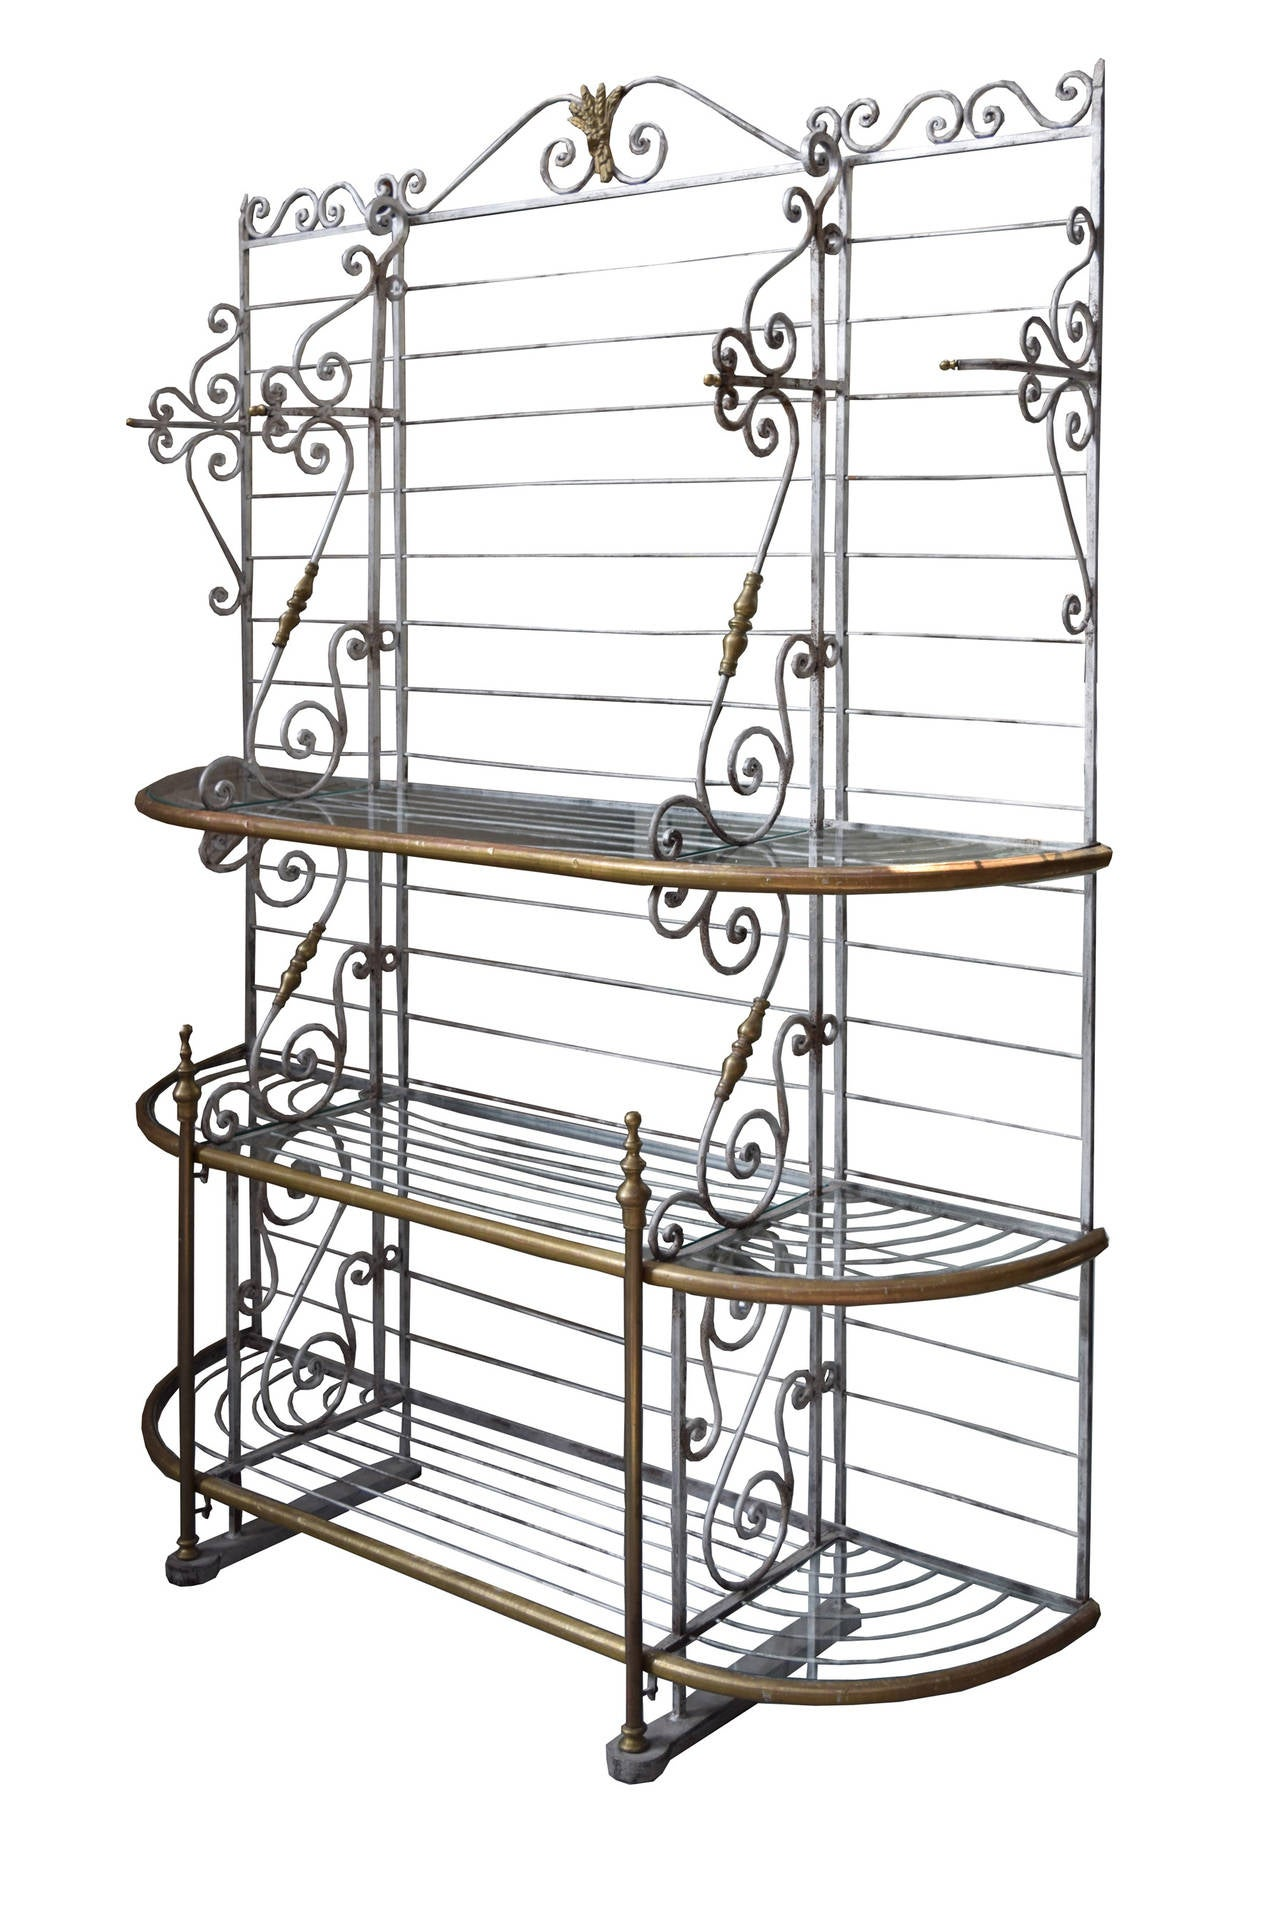 Wonderful image of Wrought Iron Bakers Rack With Wood Shelves Pictures to pin on  with #5F4D39 color and 1280x1928 pixels